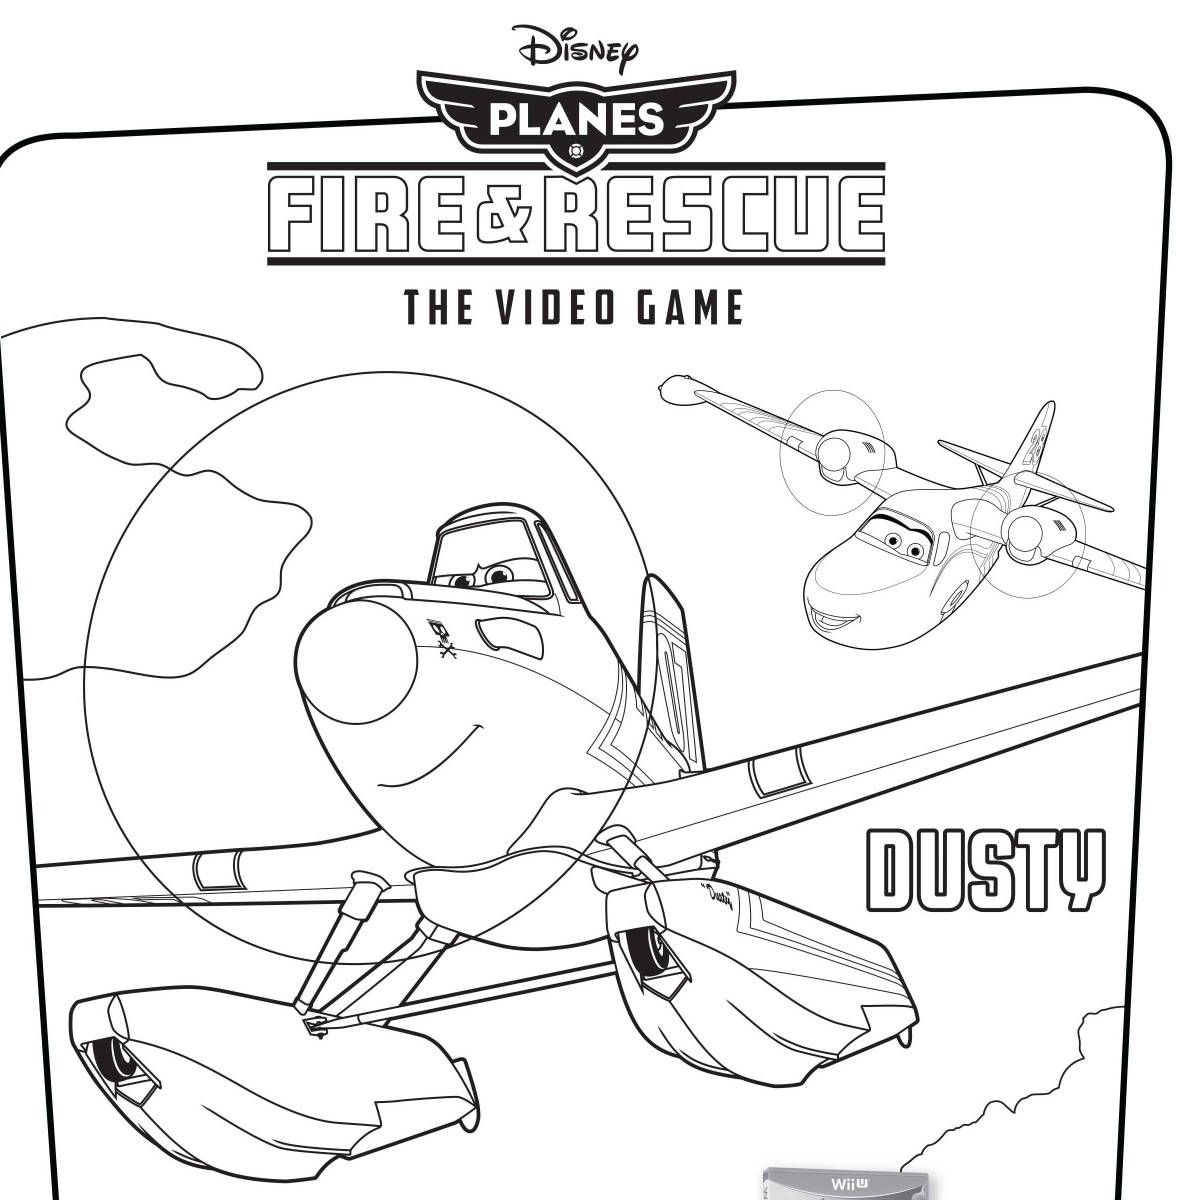 disneys planes fire rescue video game coloring pages - Interactive Coloring Pages Disney